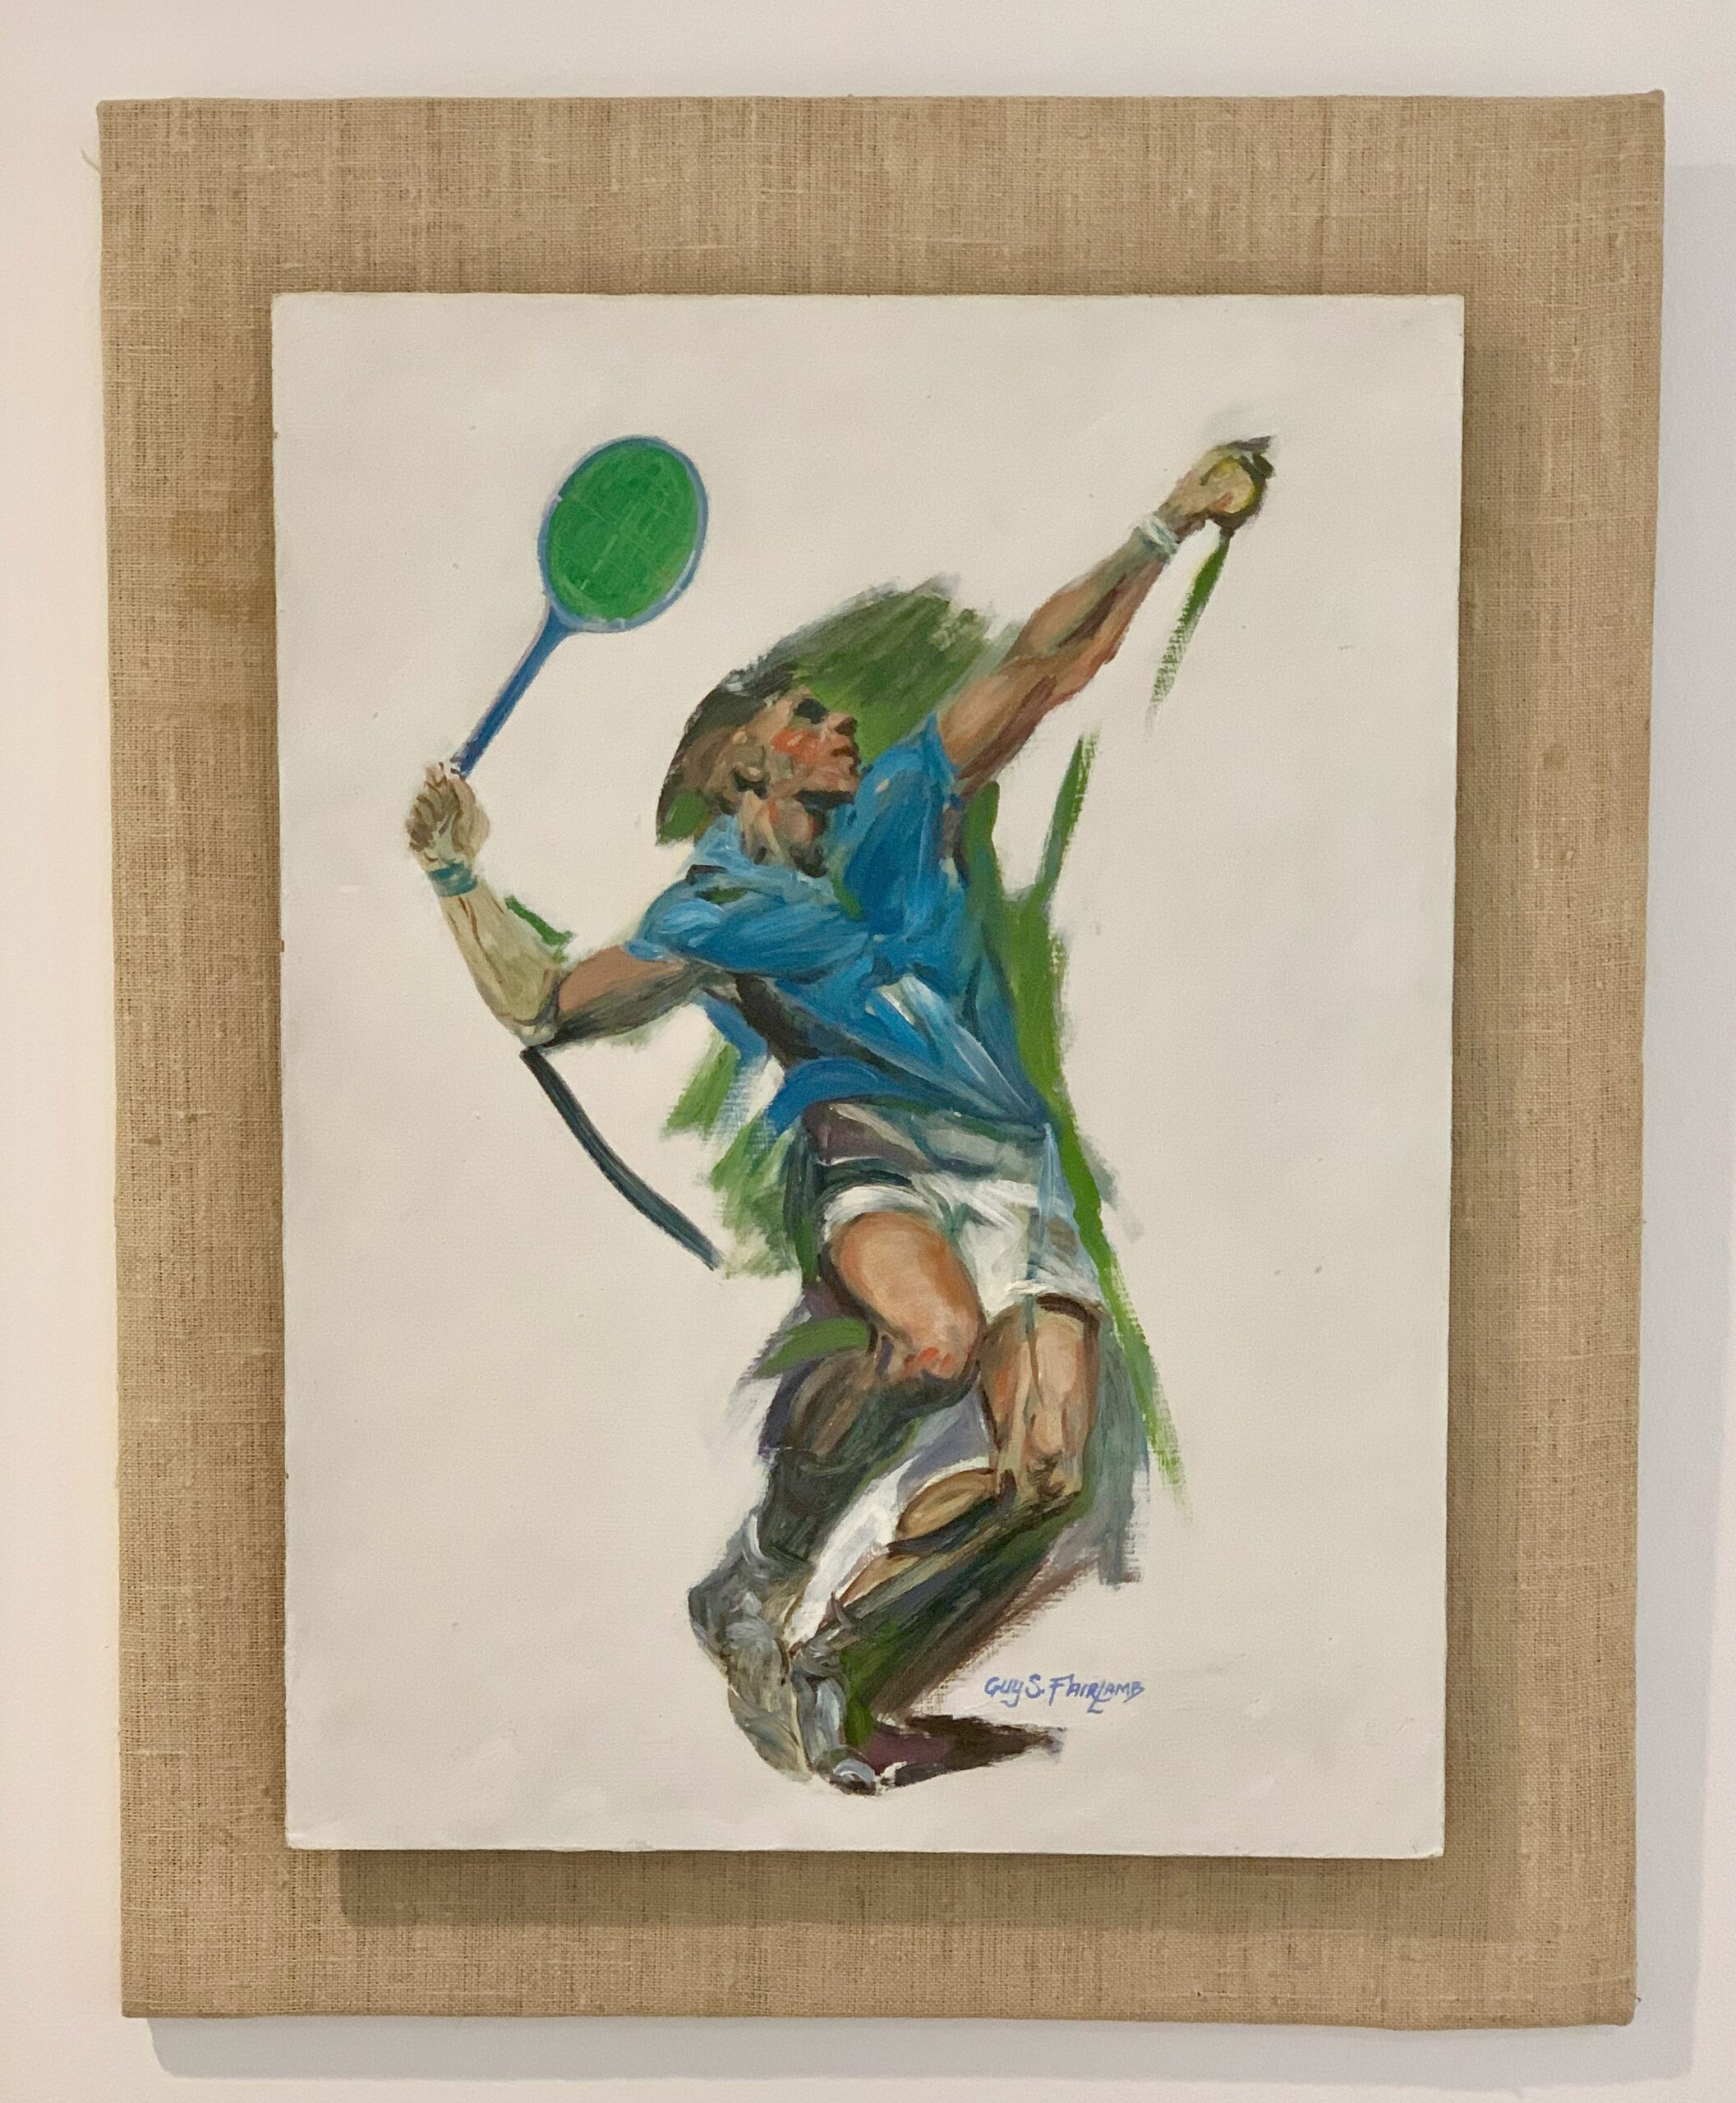 Guy Steele Fairlamb, Tennis: Going for the Ace (frame)